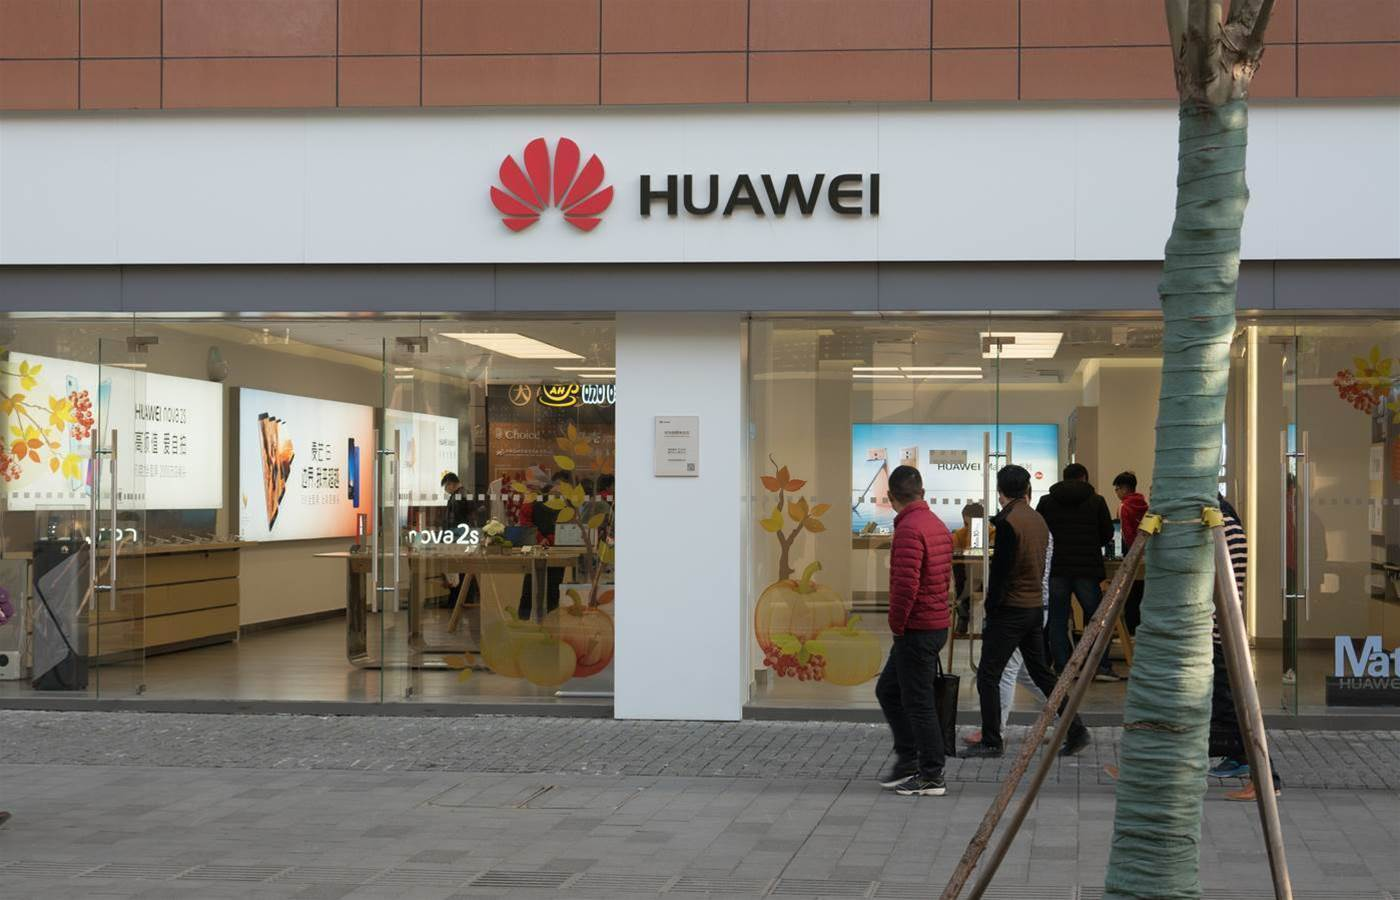 Huawei offers to build cyber security centre in Poland